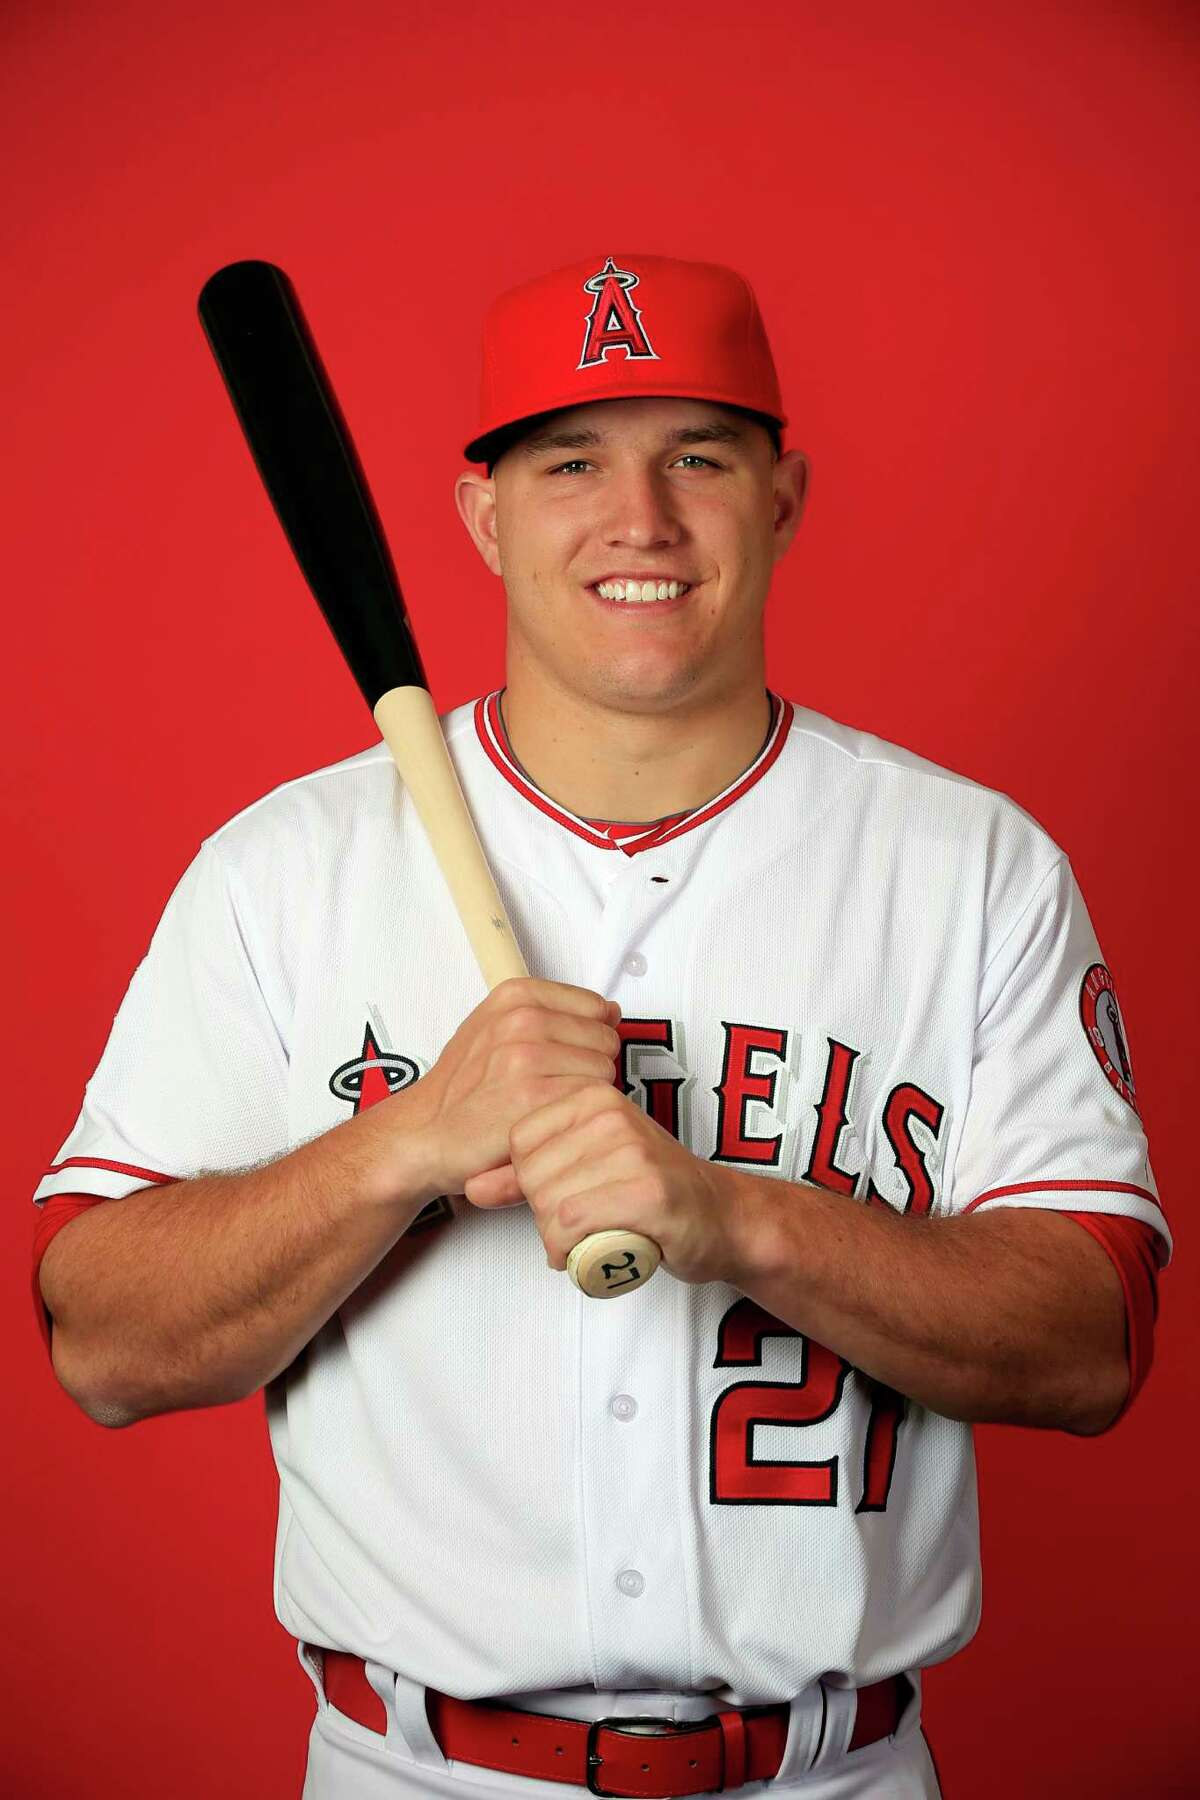 TEMPE, AZ - FEBRUARY 28: Mike Trout #27 poses during Los Angeles Angels of Anaheim Photo Day on February 28, 2015 in Tempe, Arizona. (Photo by Jamie Squire/Getty Images)